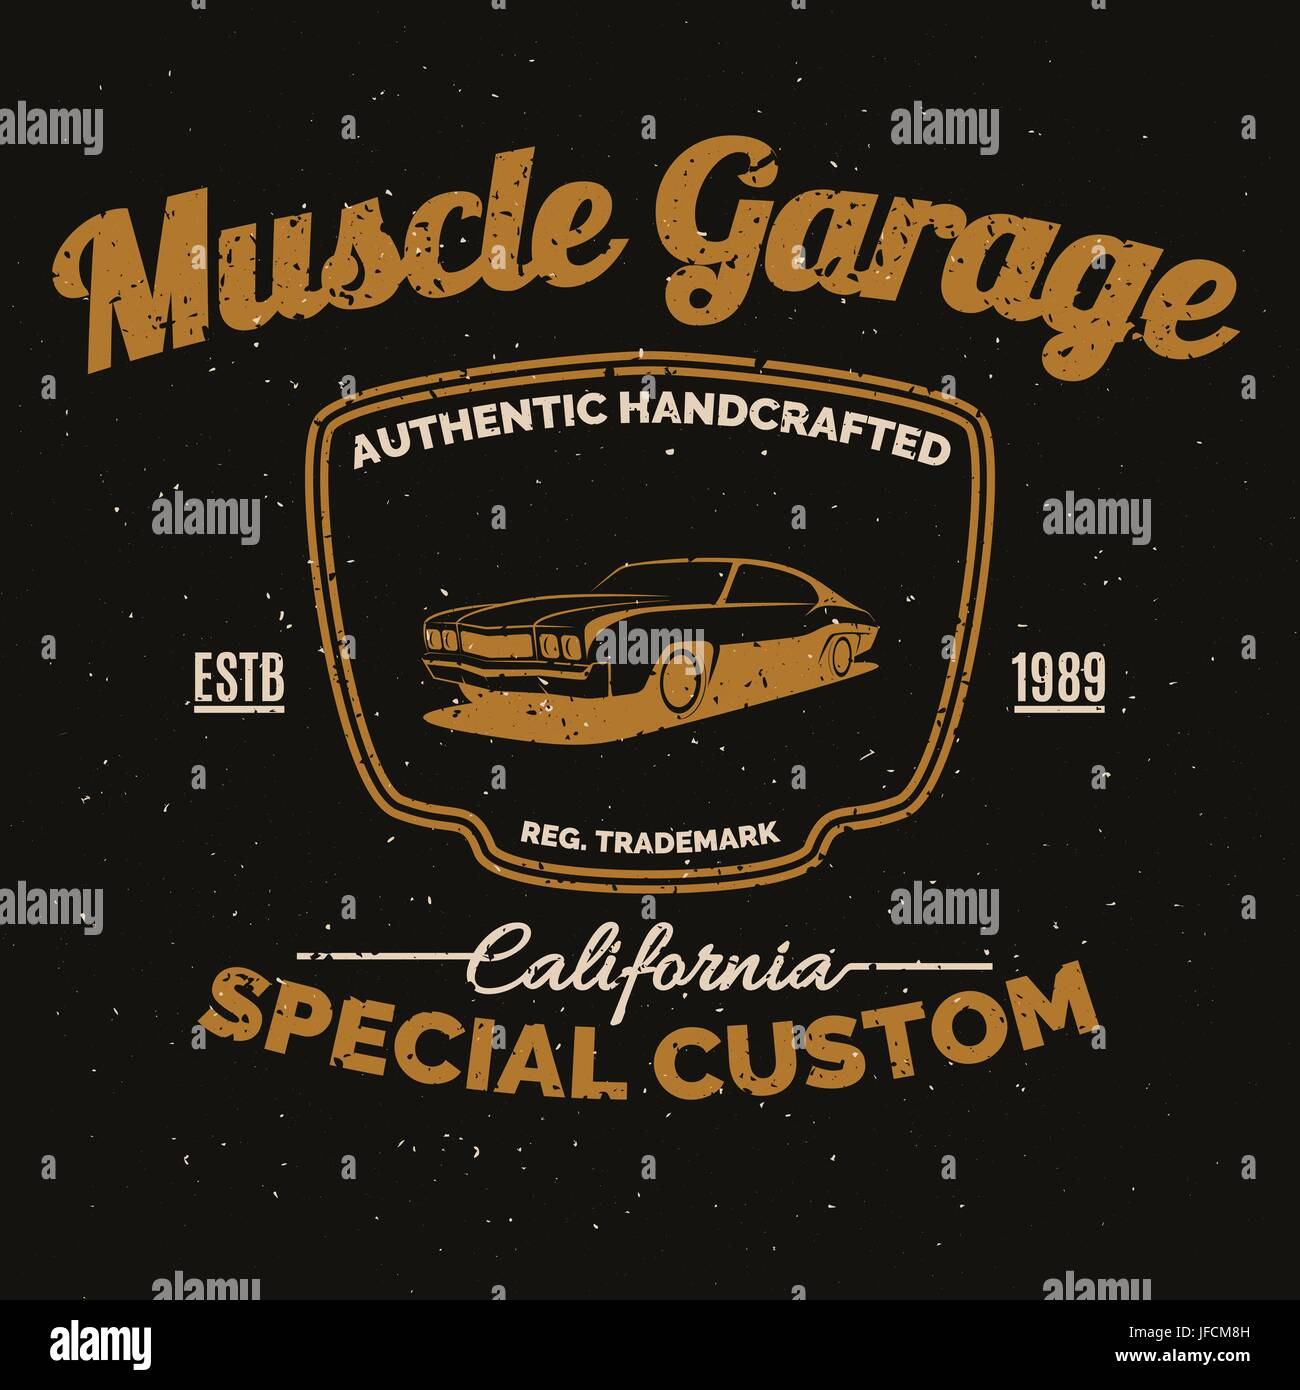 Vintage American Muscle Car Tee Print Design With Grunge Stock